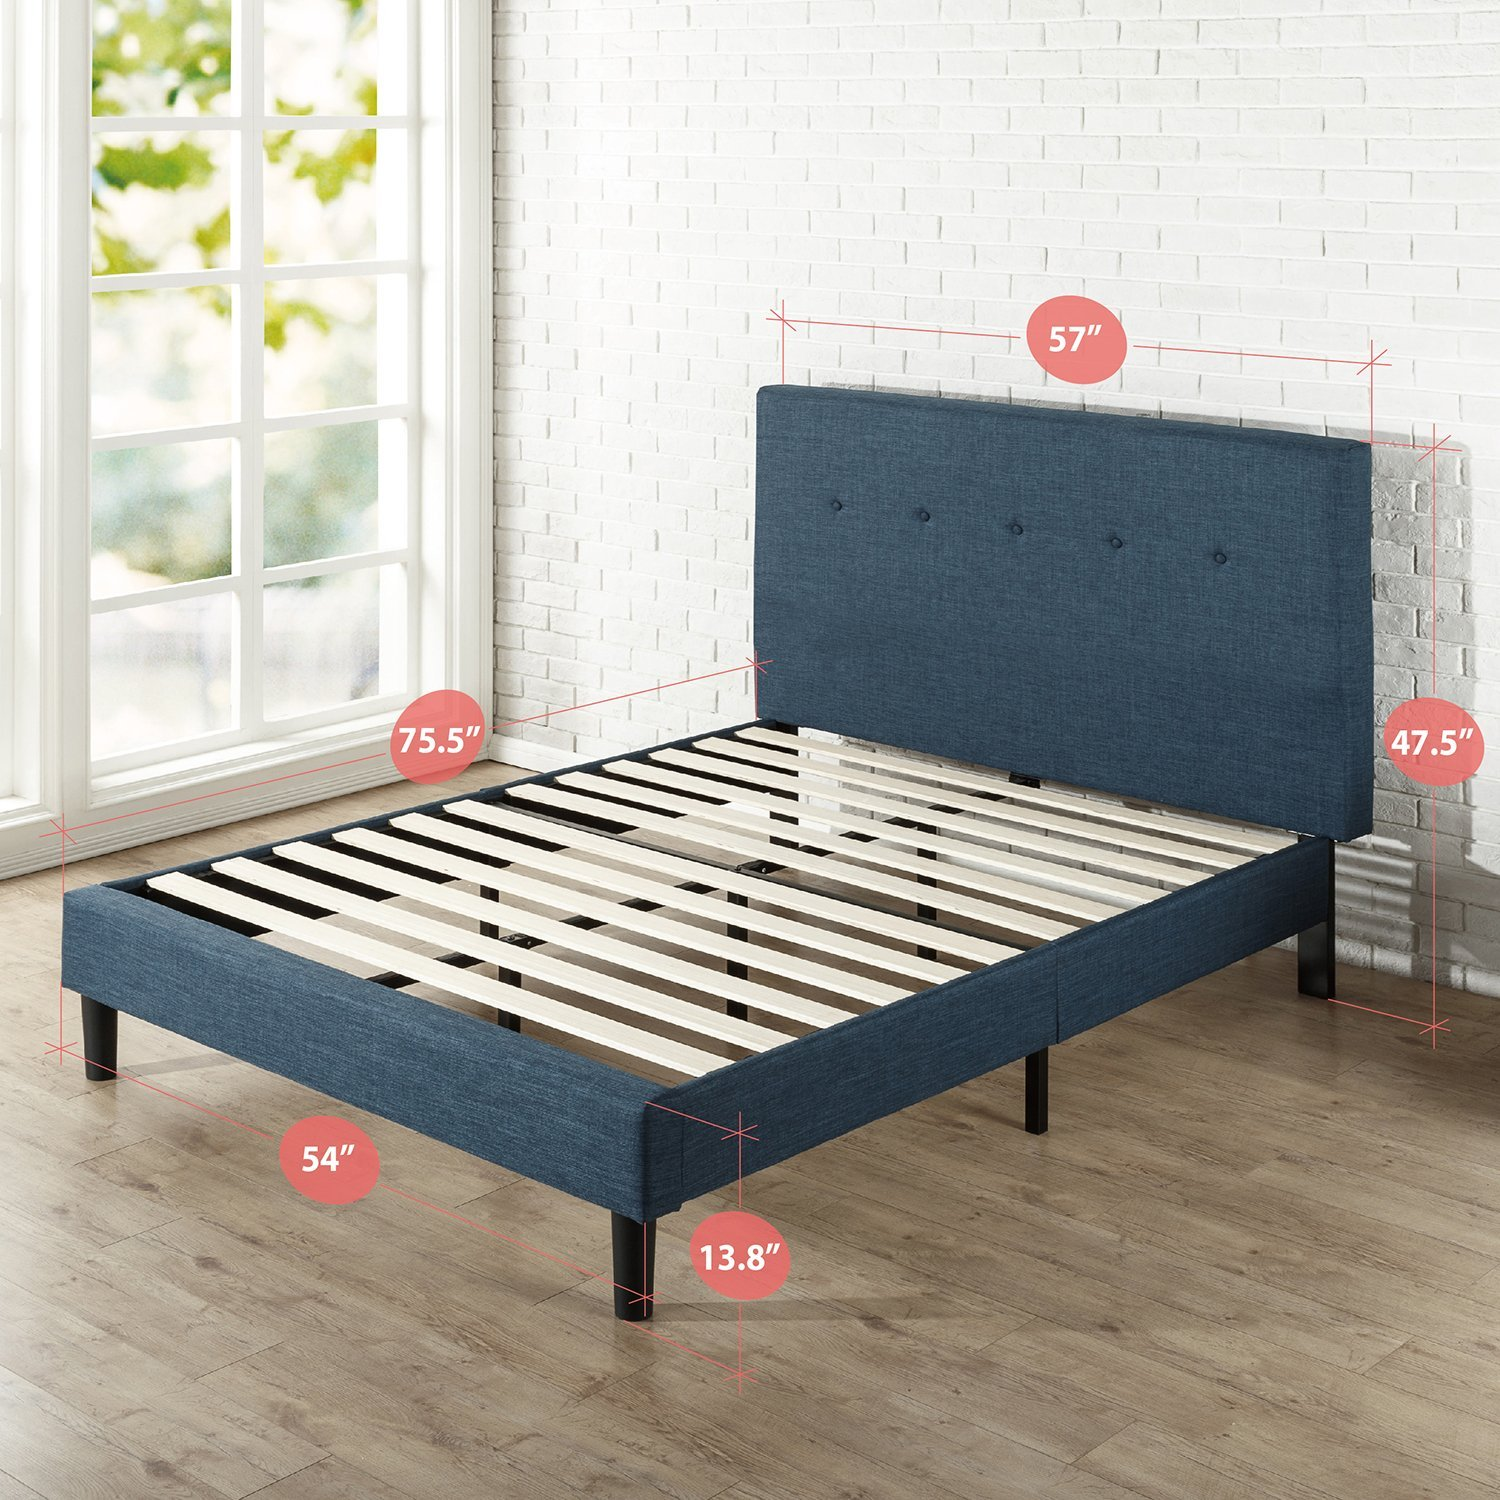 Zinus Omkaram Upholstered Navy Button Detailed Platform Bed / Mattress Foundation / Easy Assembly / Strong Wood Slat Support, Full by Zinus (Image #2)